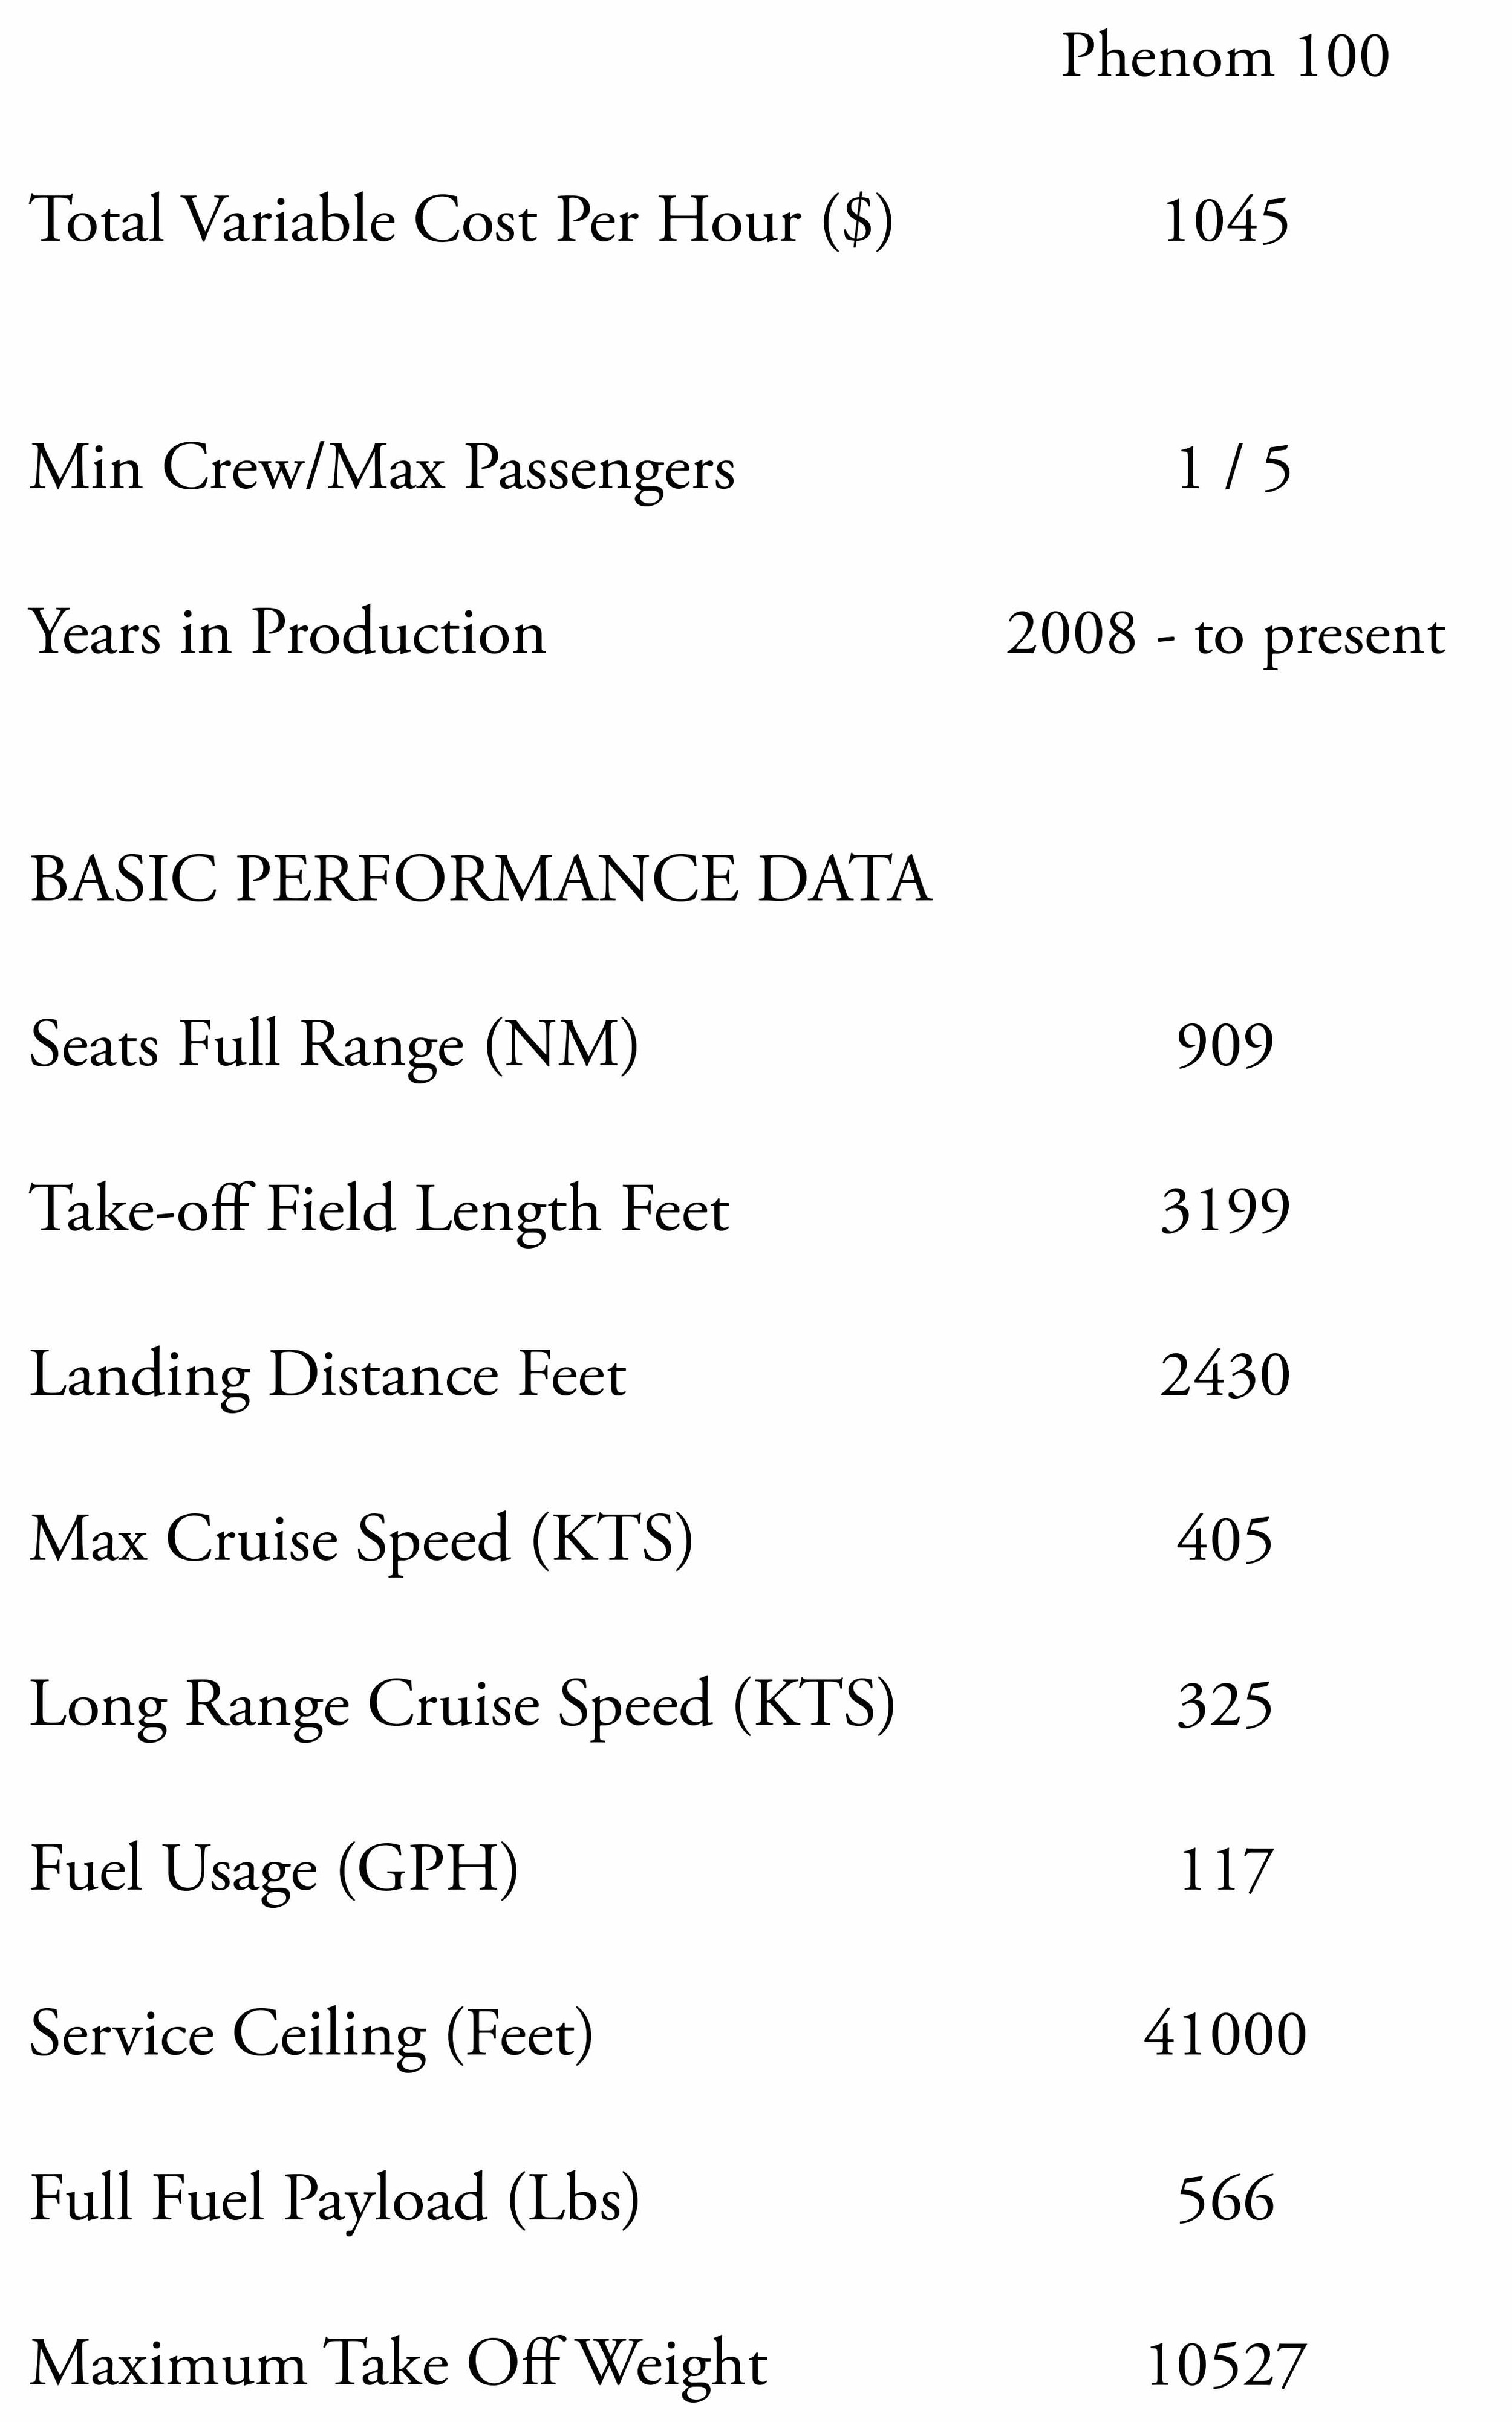 Embraer Phenom 100 performance specs, information, variable cost per hour, cost of ownership, max cruise speed, service ceiling, ect.